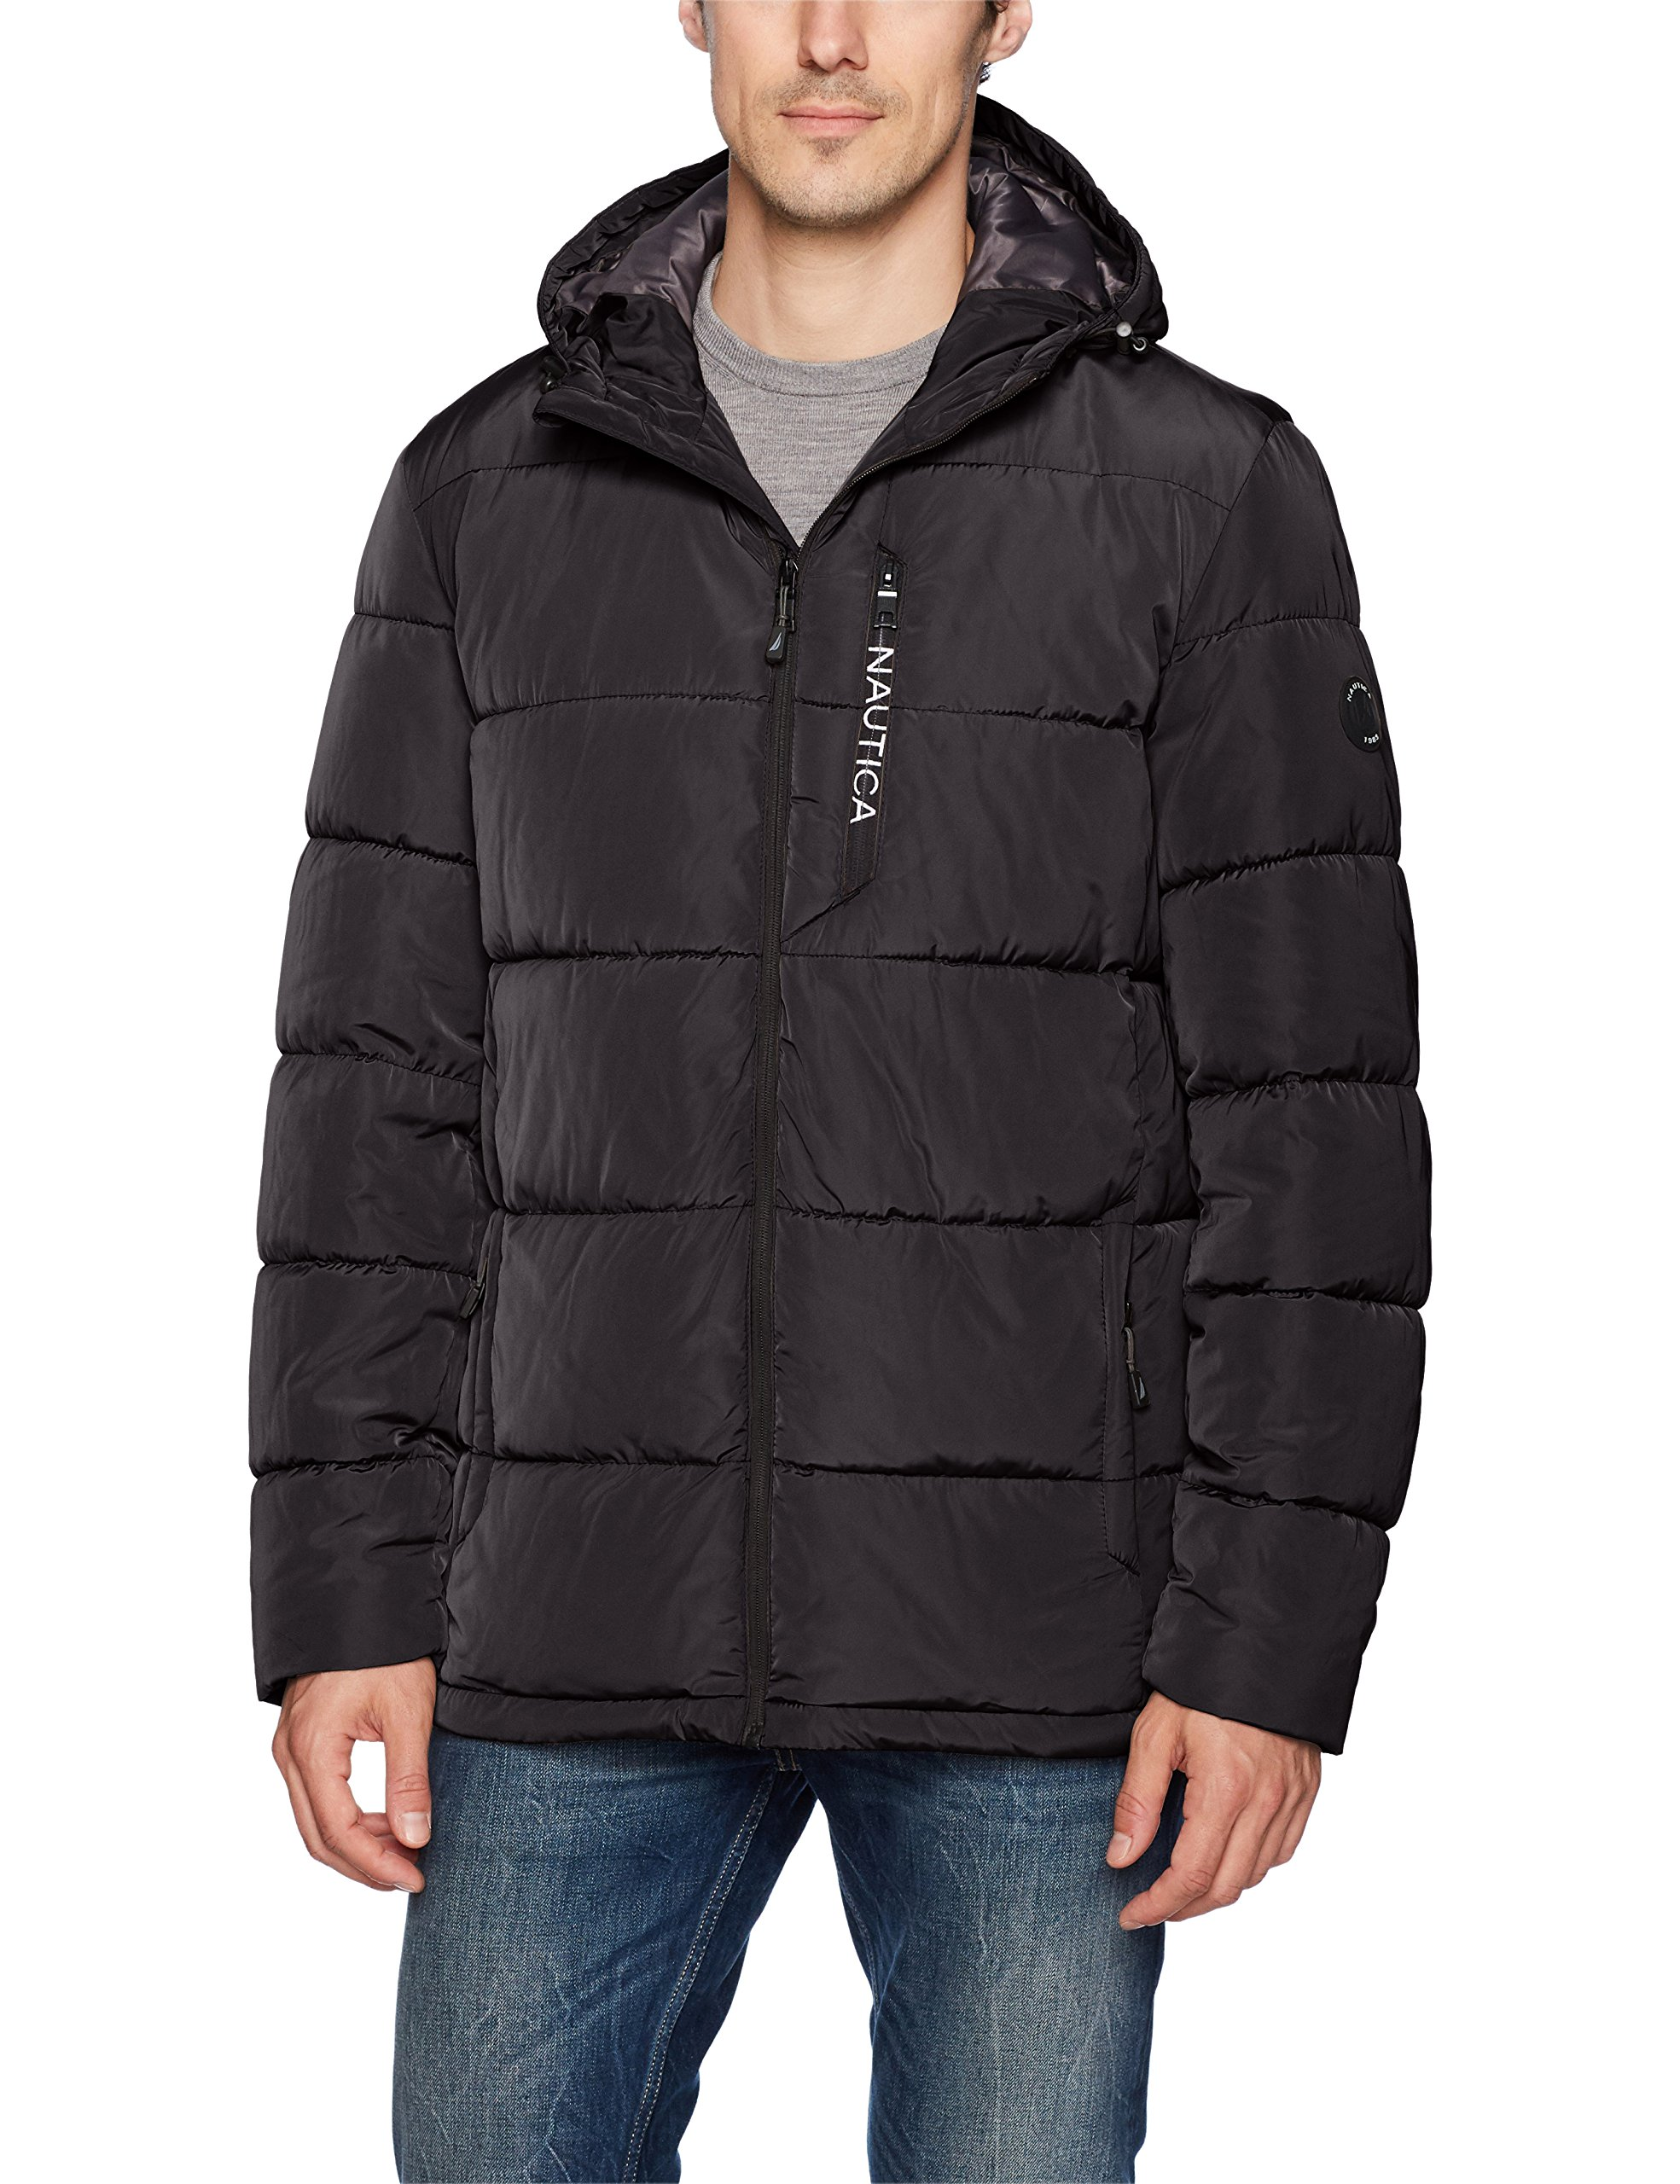 Nautica Men's Quilted Hooded Parka Jacket, Black, L by Nautica